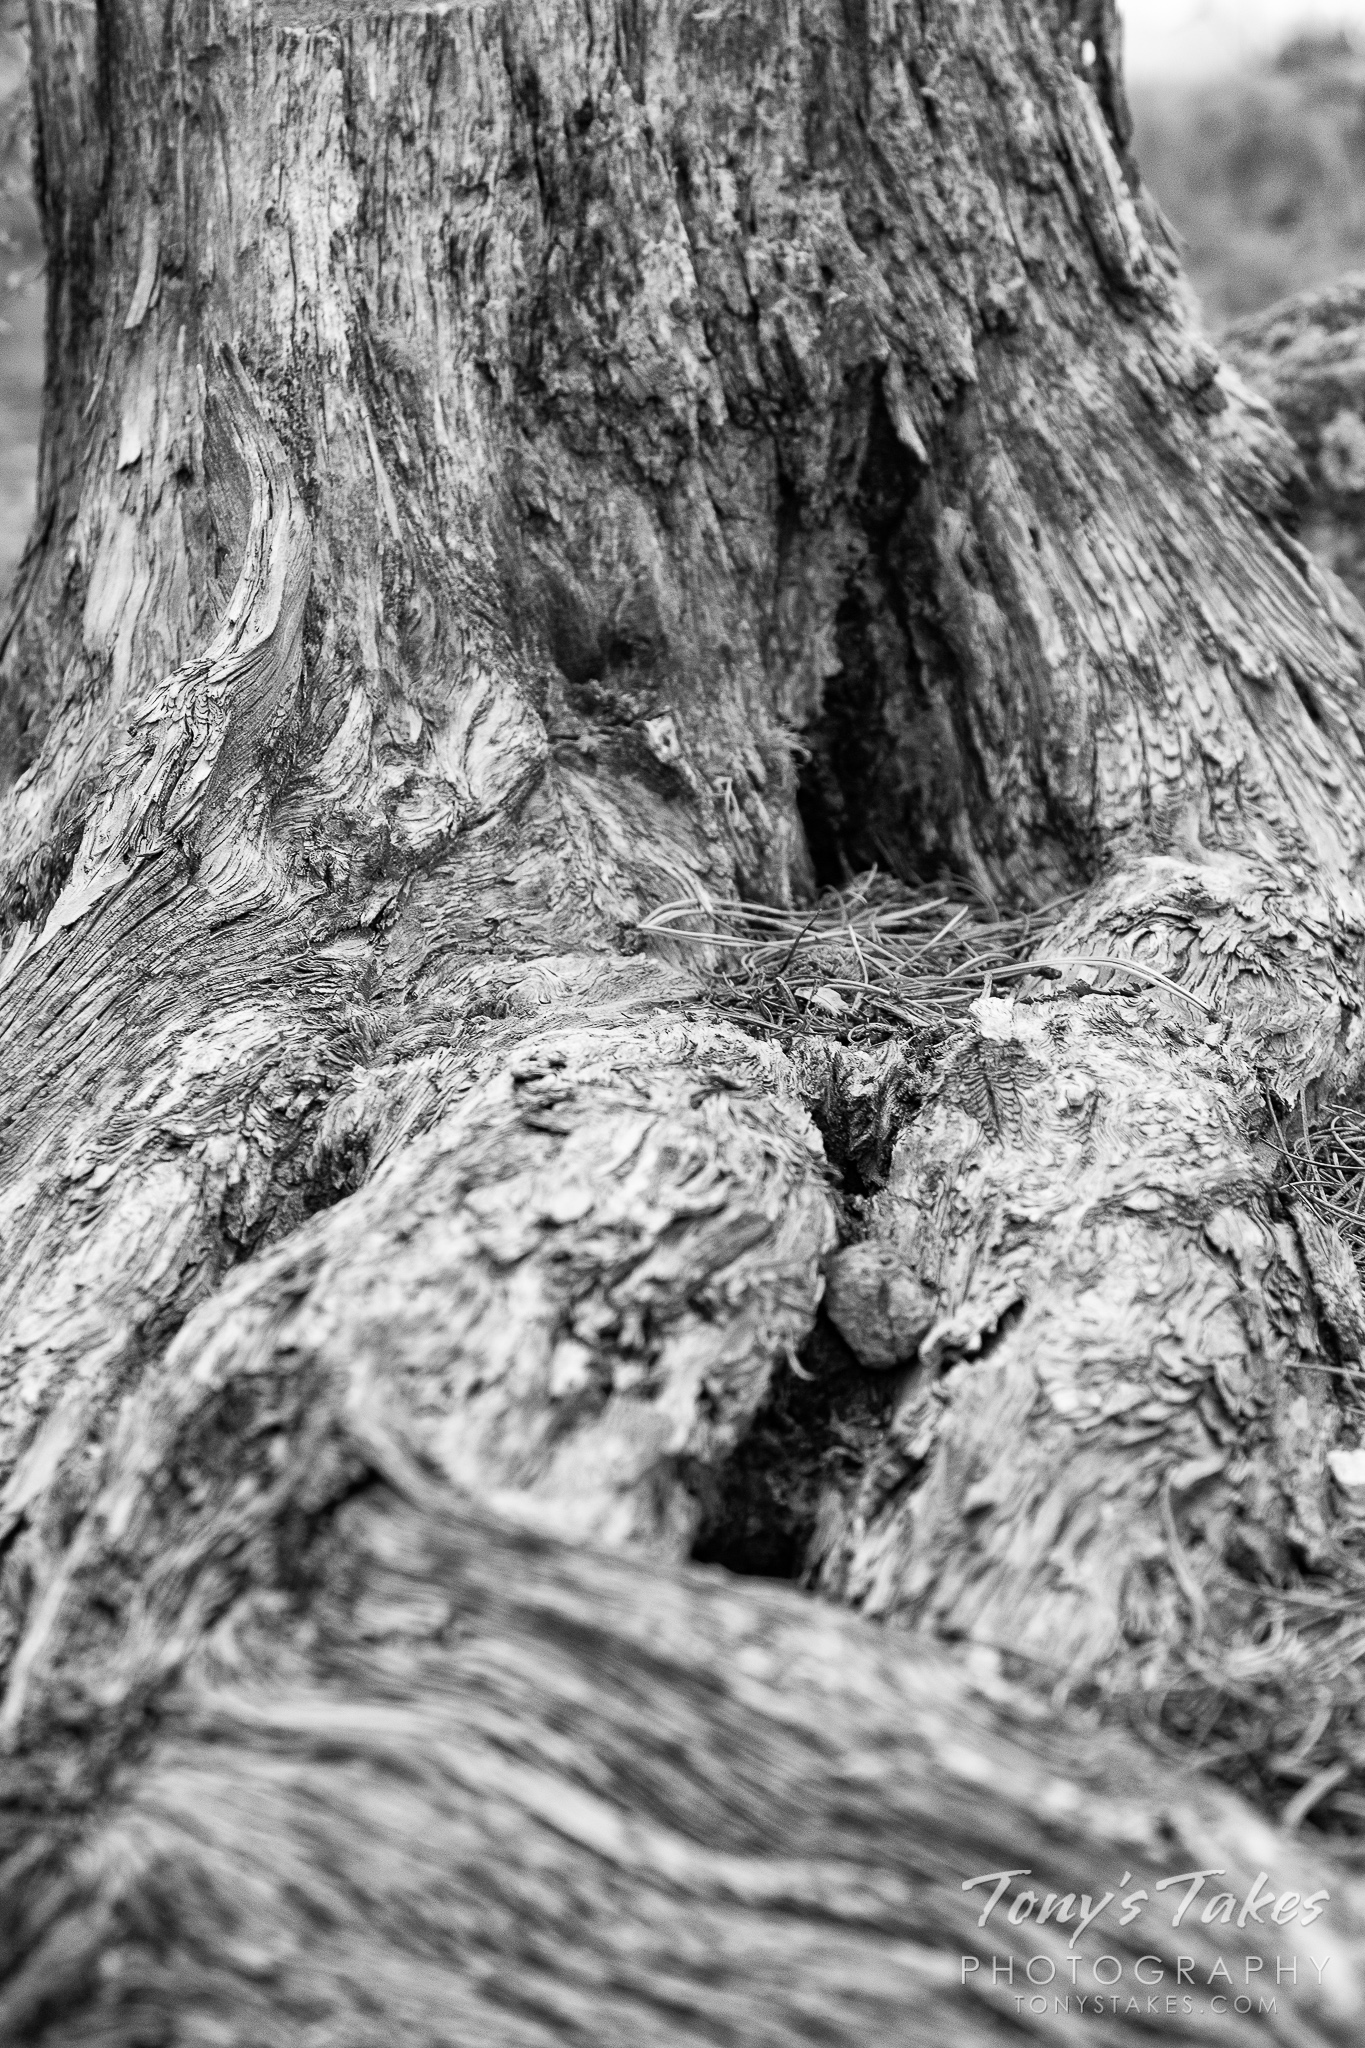 A gnarled old stump in the Colorado forest. (© Tony's Takes)